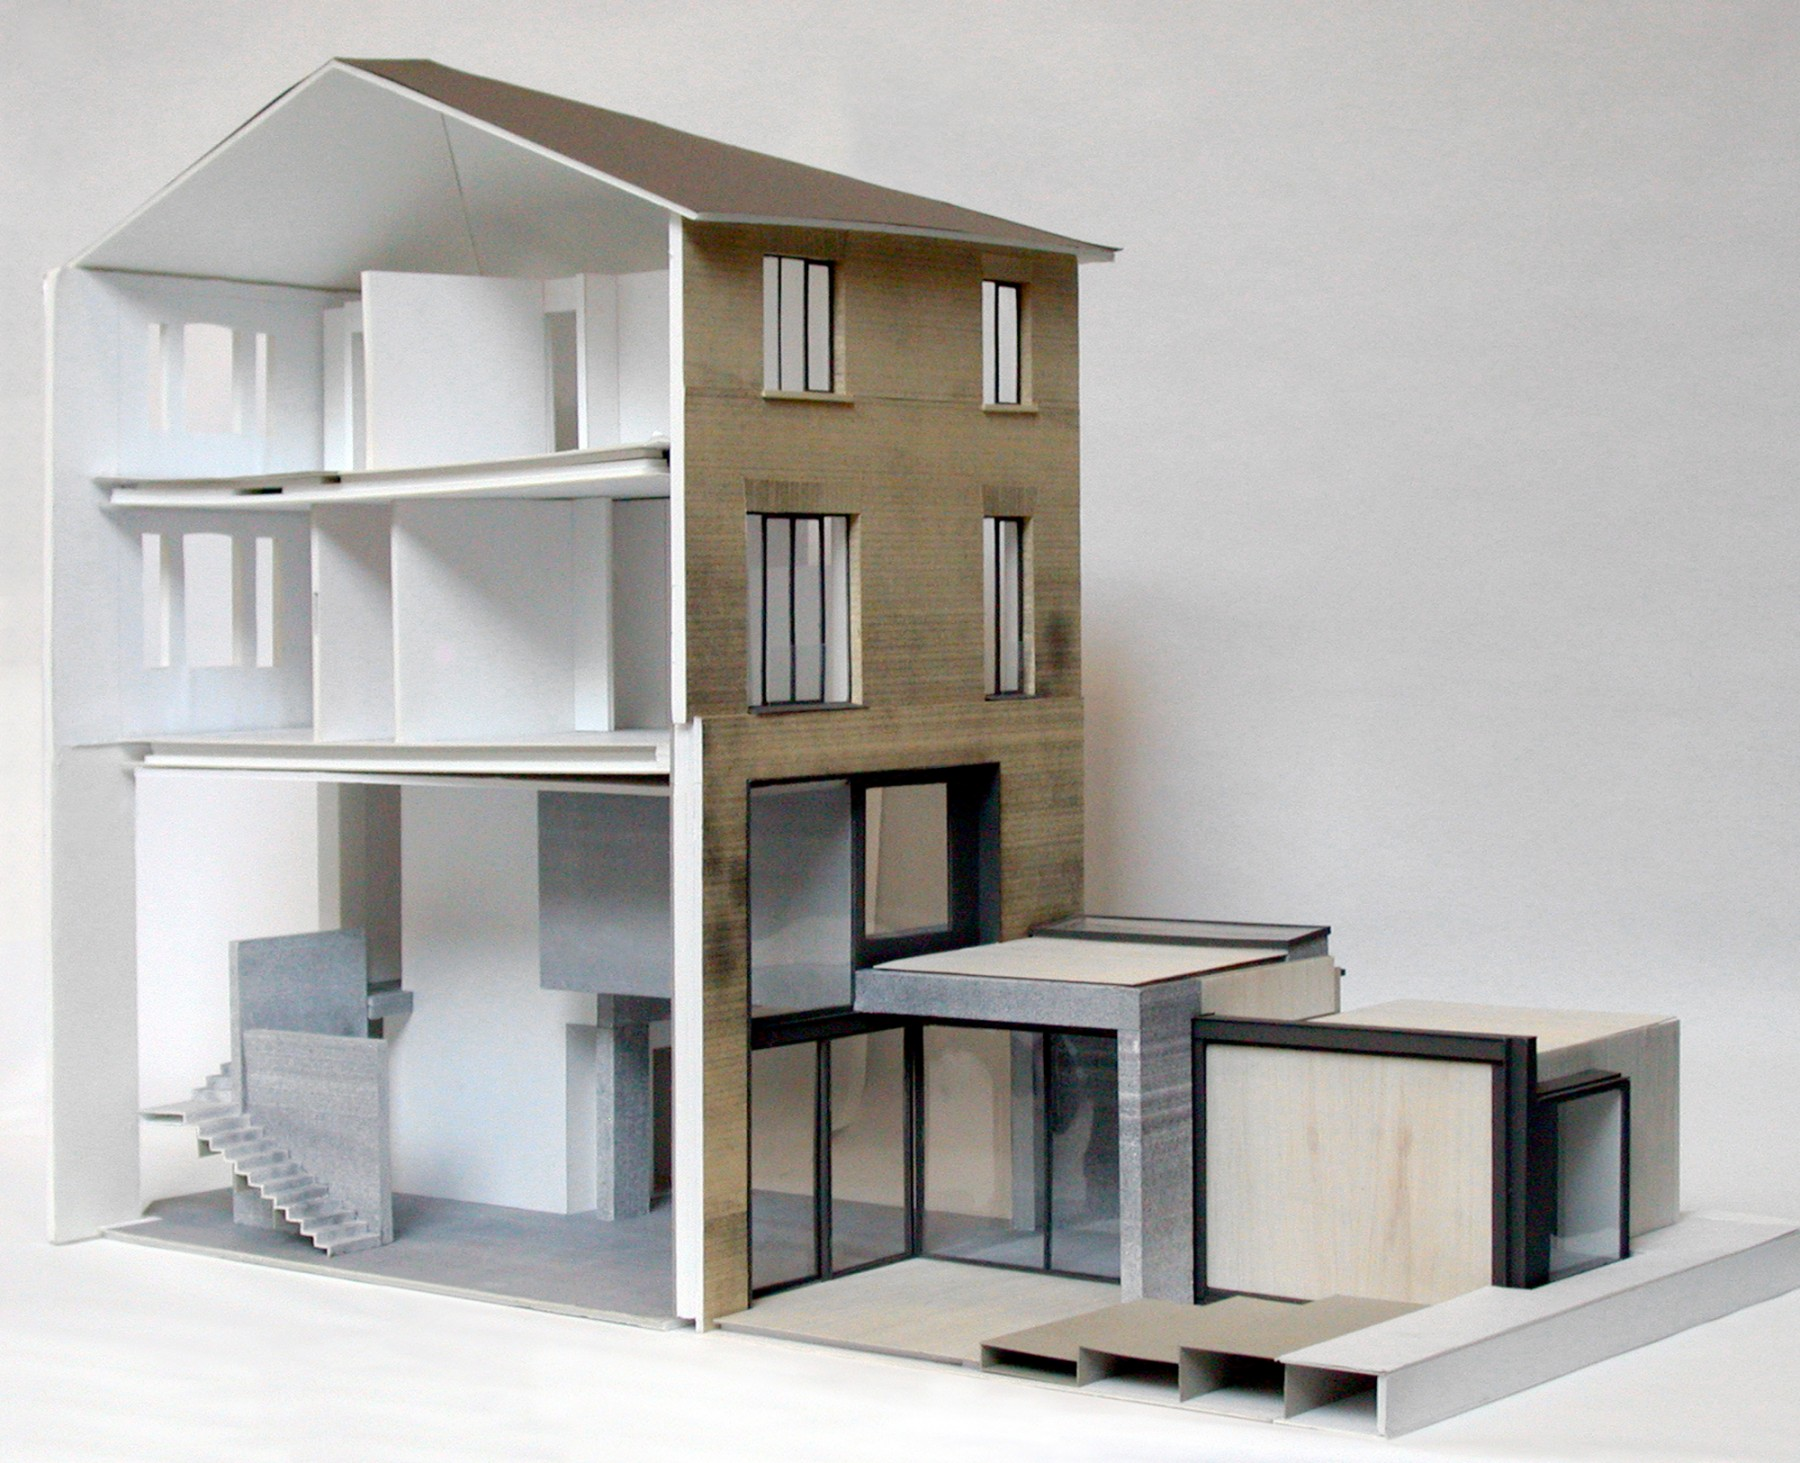 Kander-house-Primrose-hill-London-residential-home-contemporary-interior-Riba-award-victorian-Jamie-Fobert-Architects-model